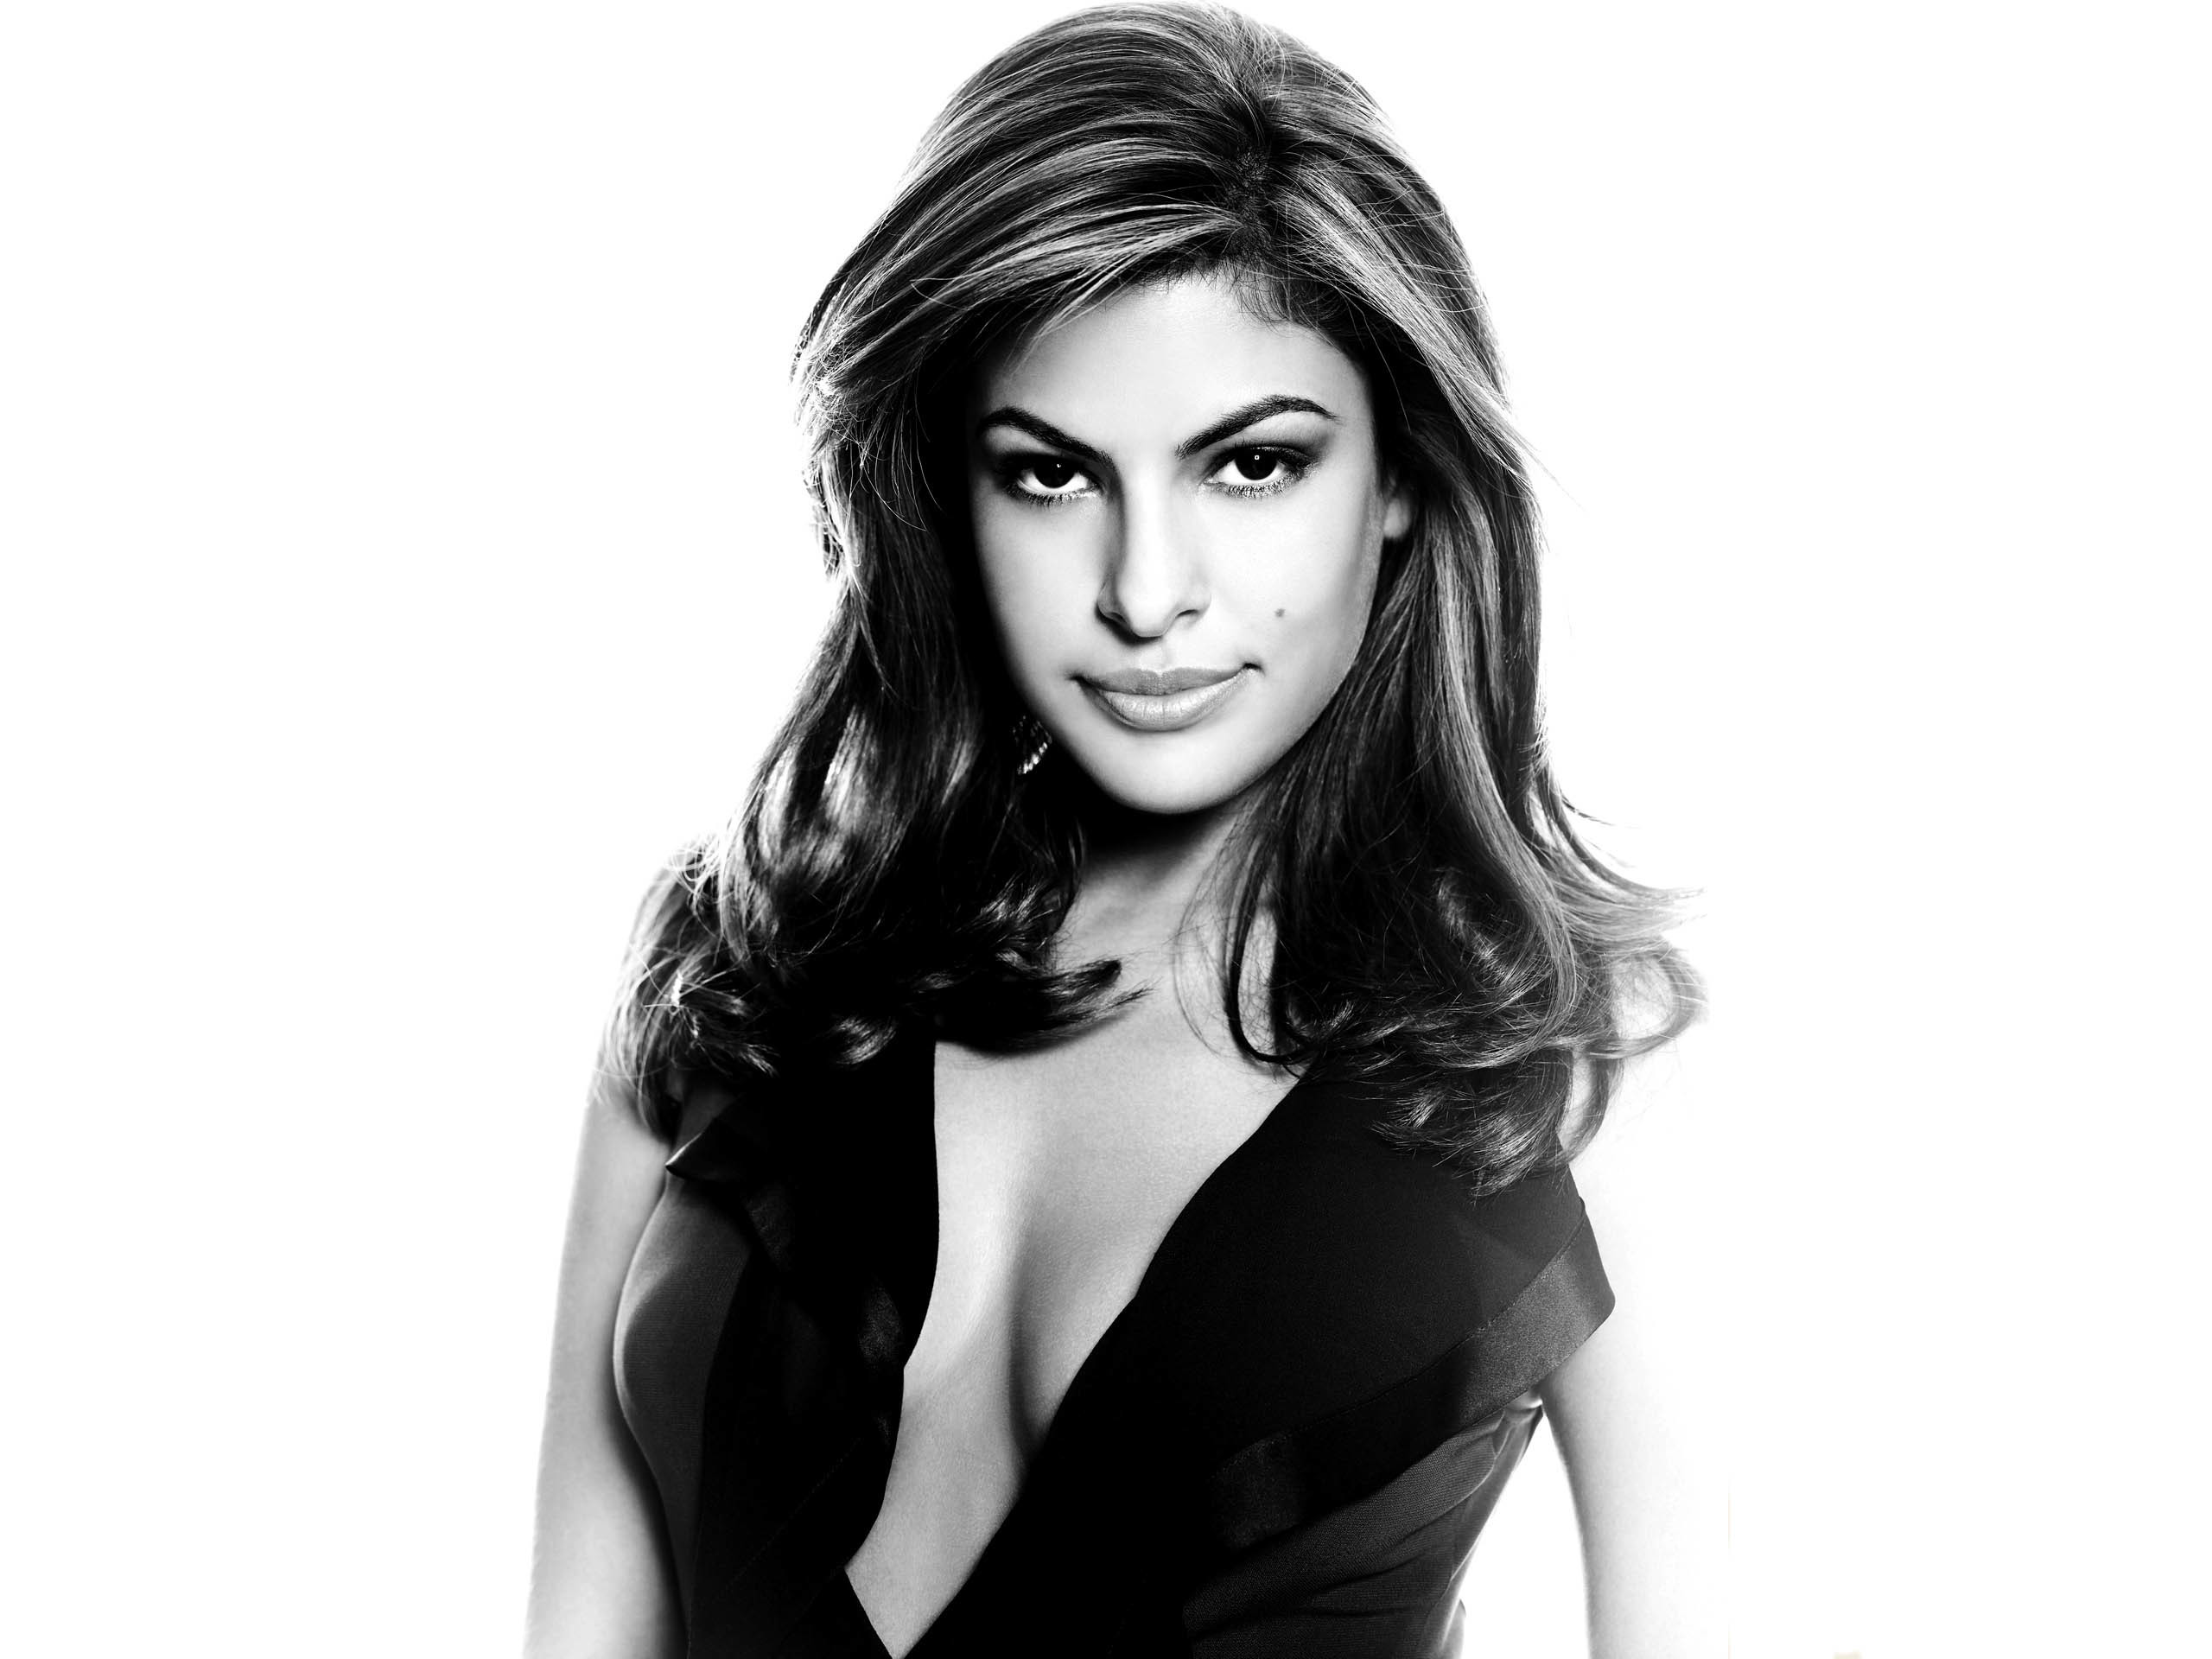 Eva Mendes Wallpapers HD Group